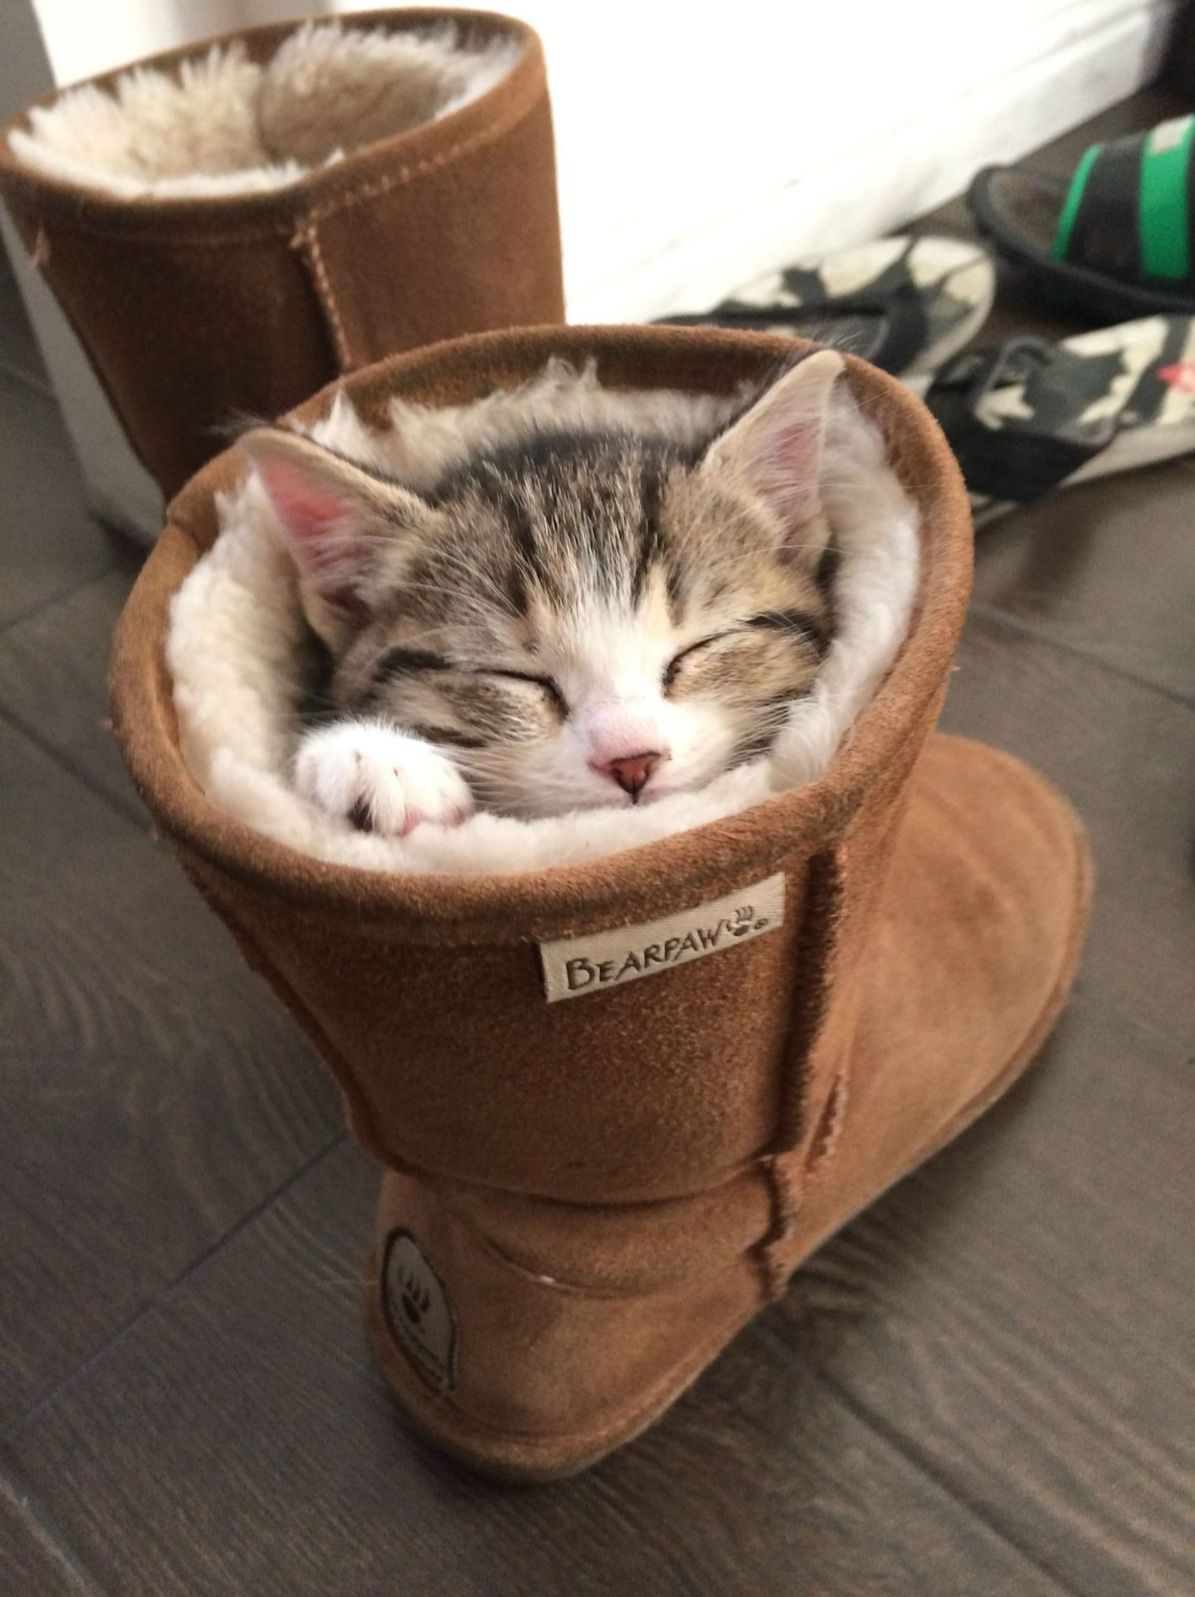 If you're feeling down, here is a sleeping kitten in a boot :)